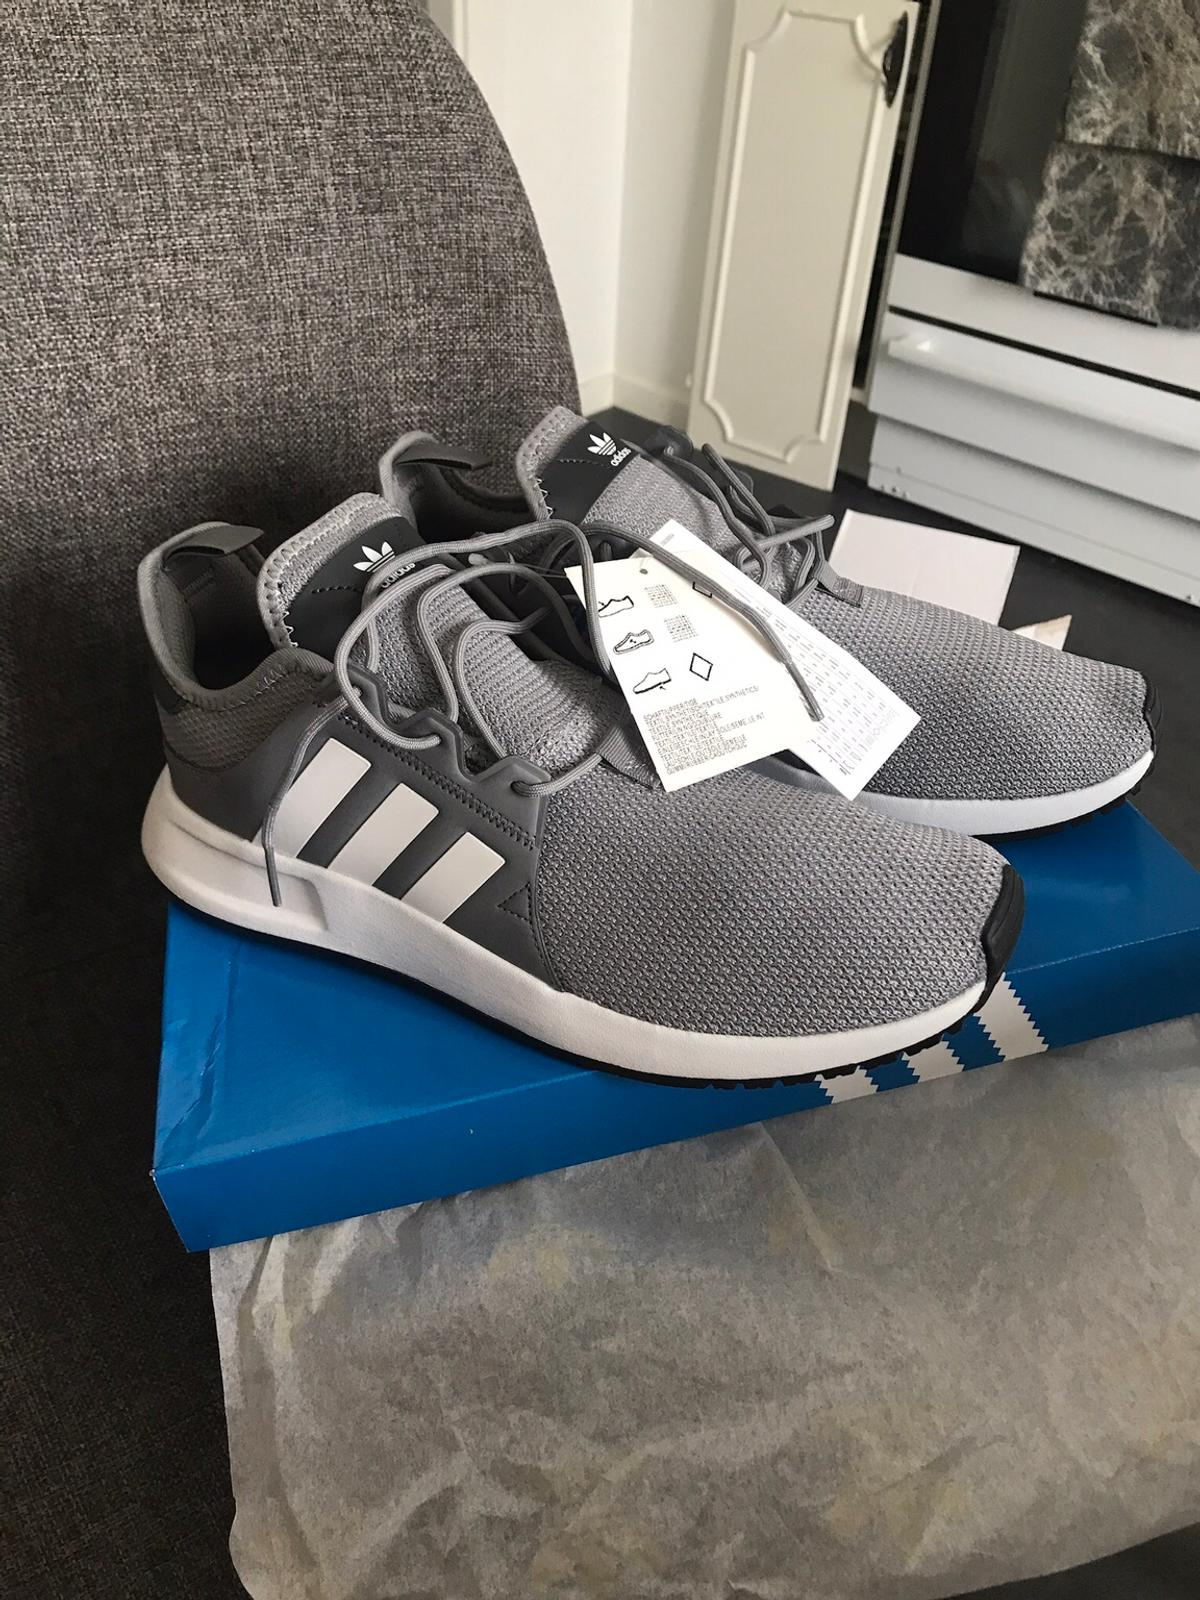 80d81156434 Sneakers adidas in 58254 Linköping for SEK 600.00 for sale - Shpock